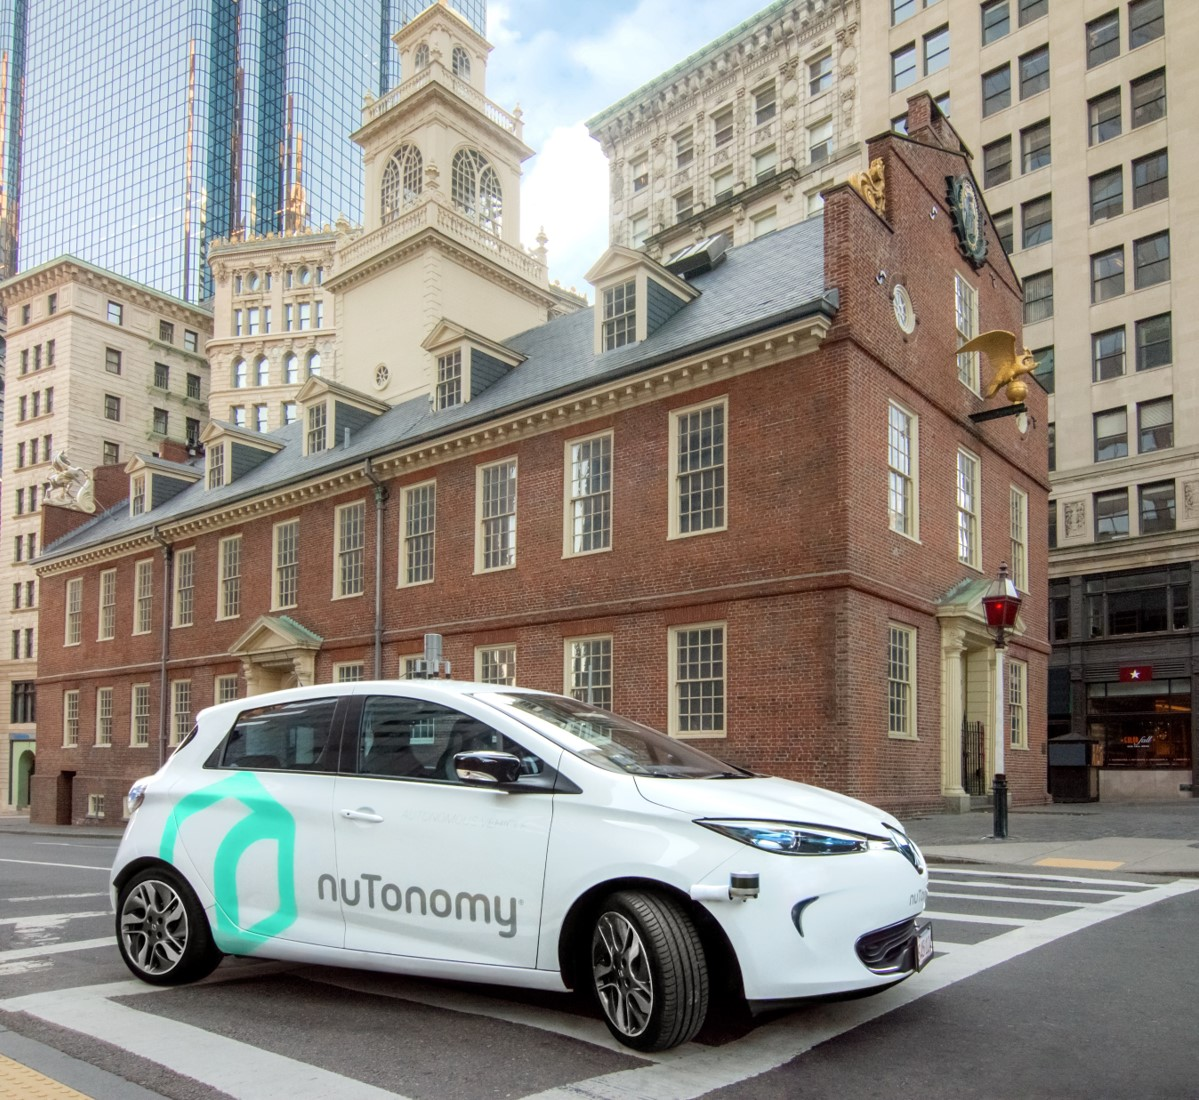 nutonomy-self-driving-car-boston.jpg